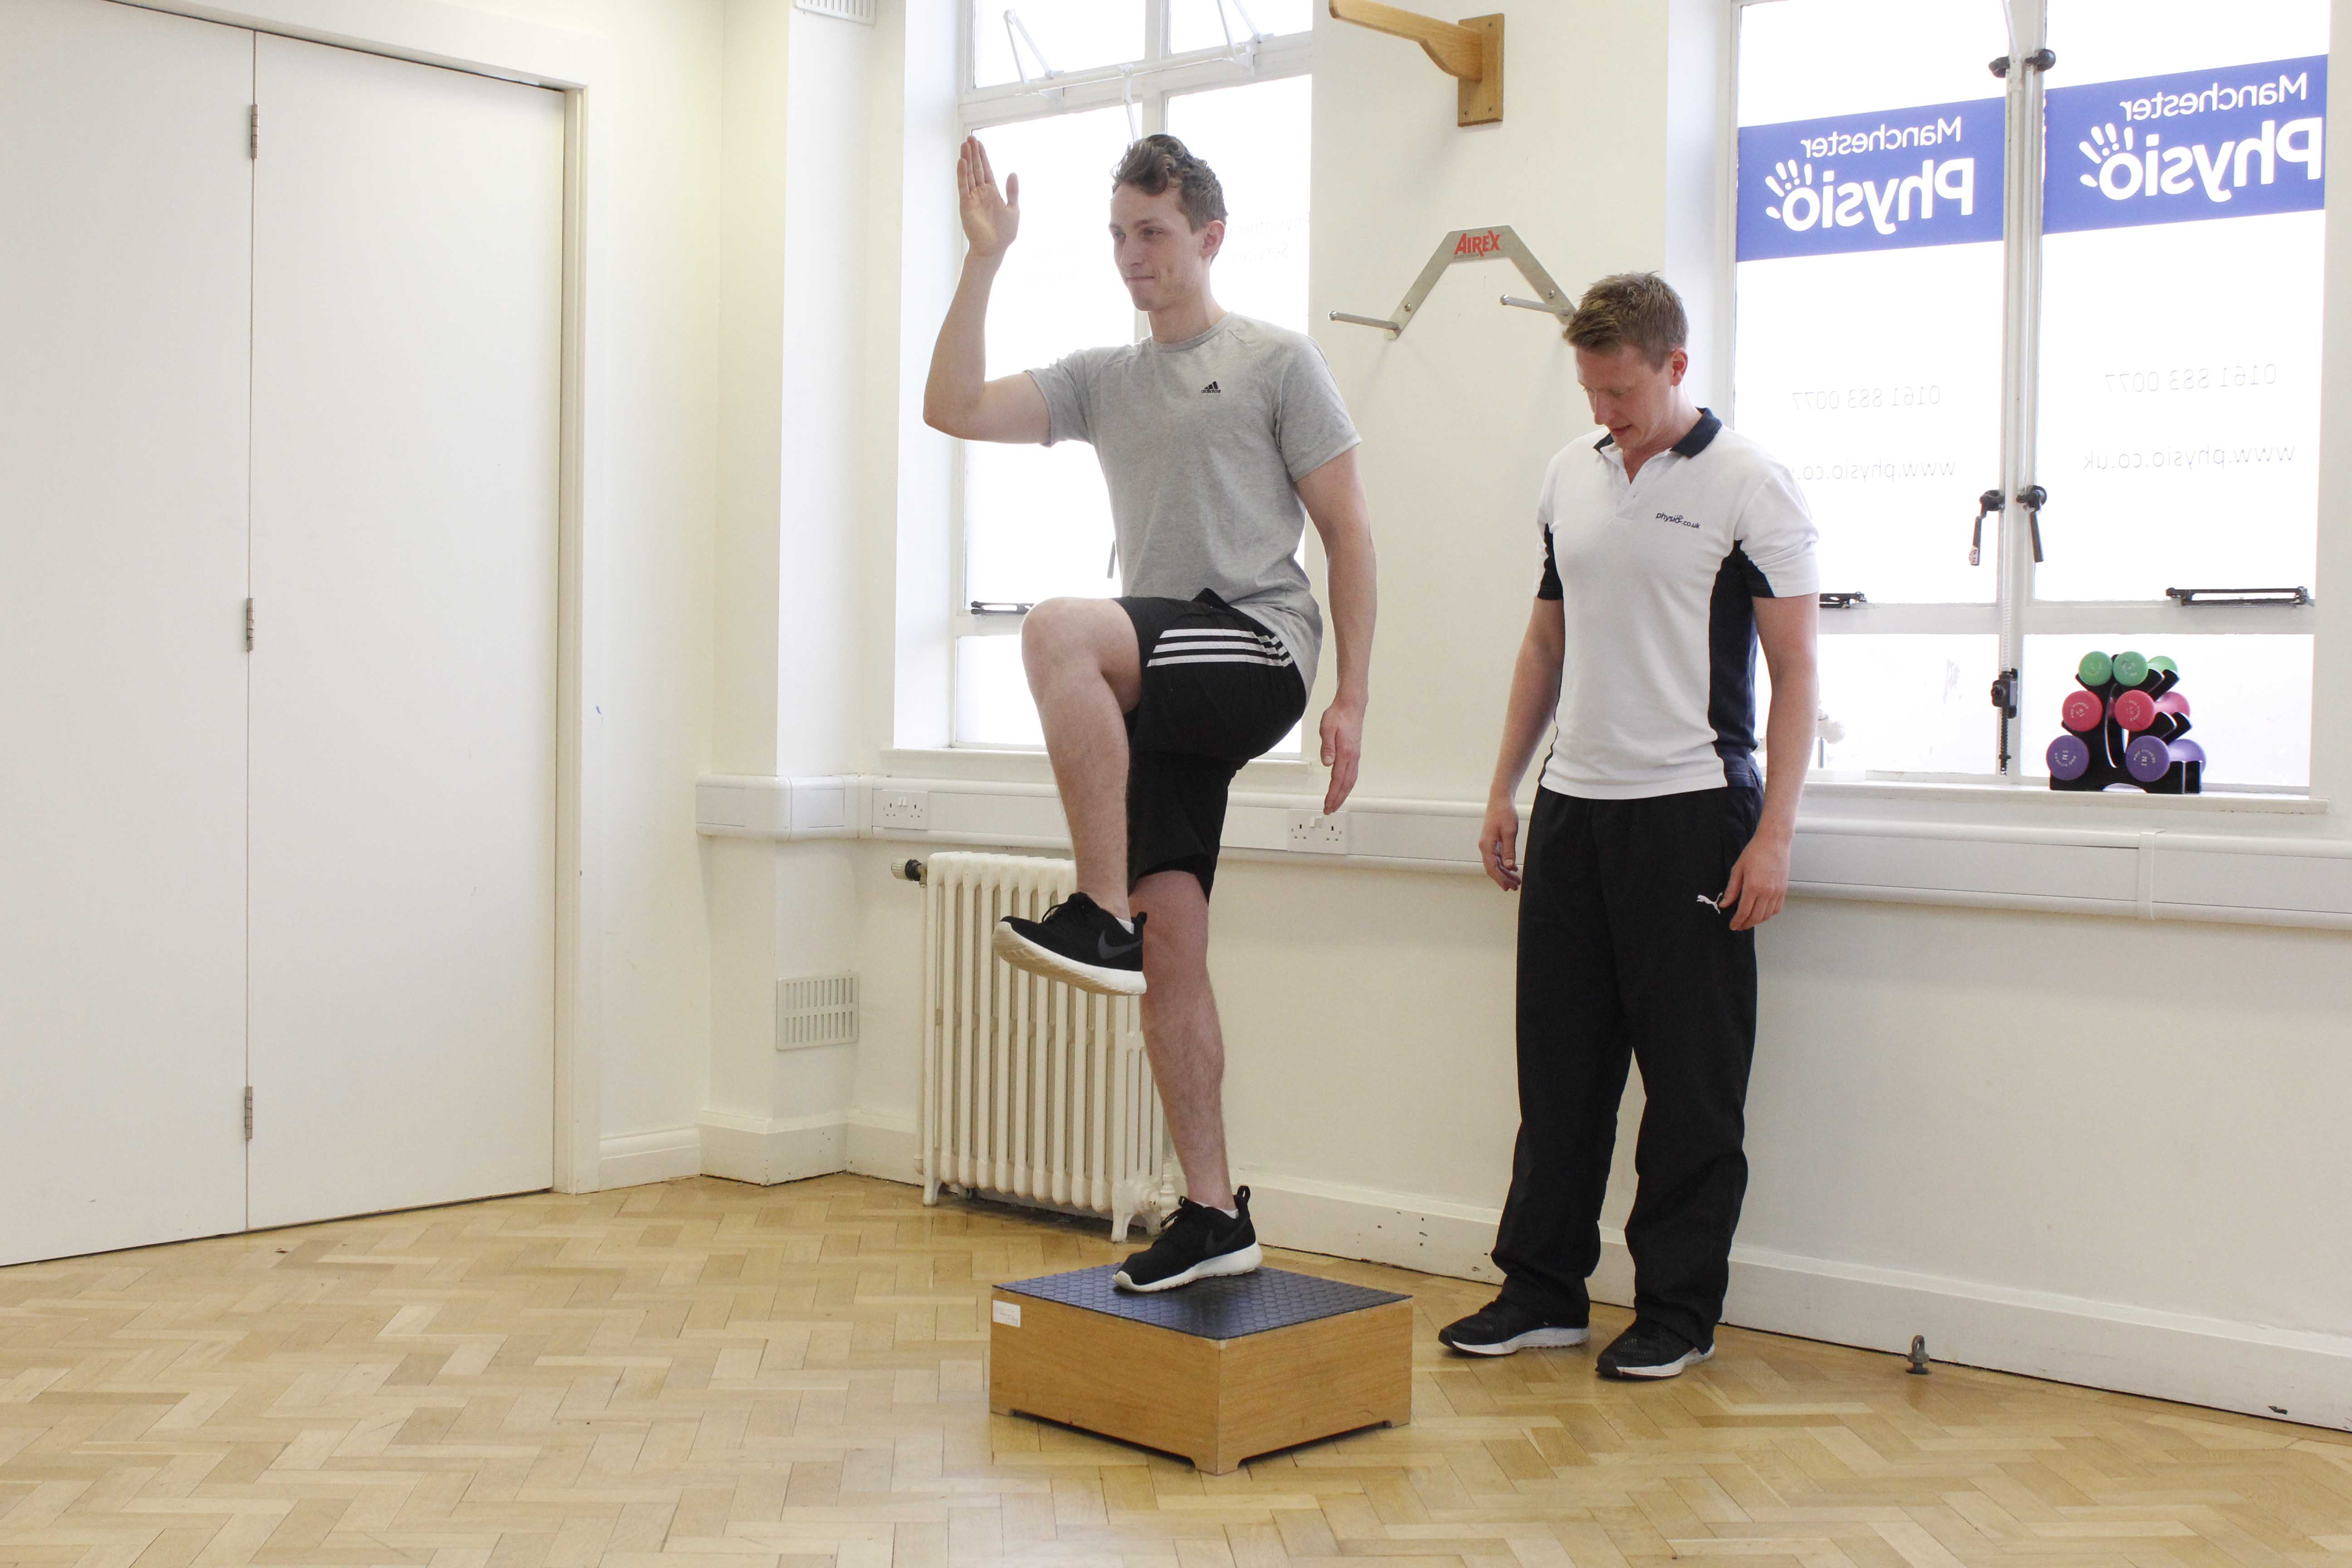 Running injury rehabilitation assessment and exercises